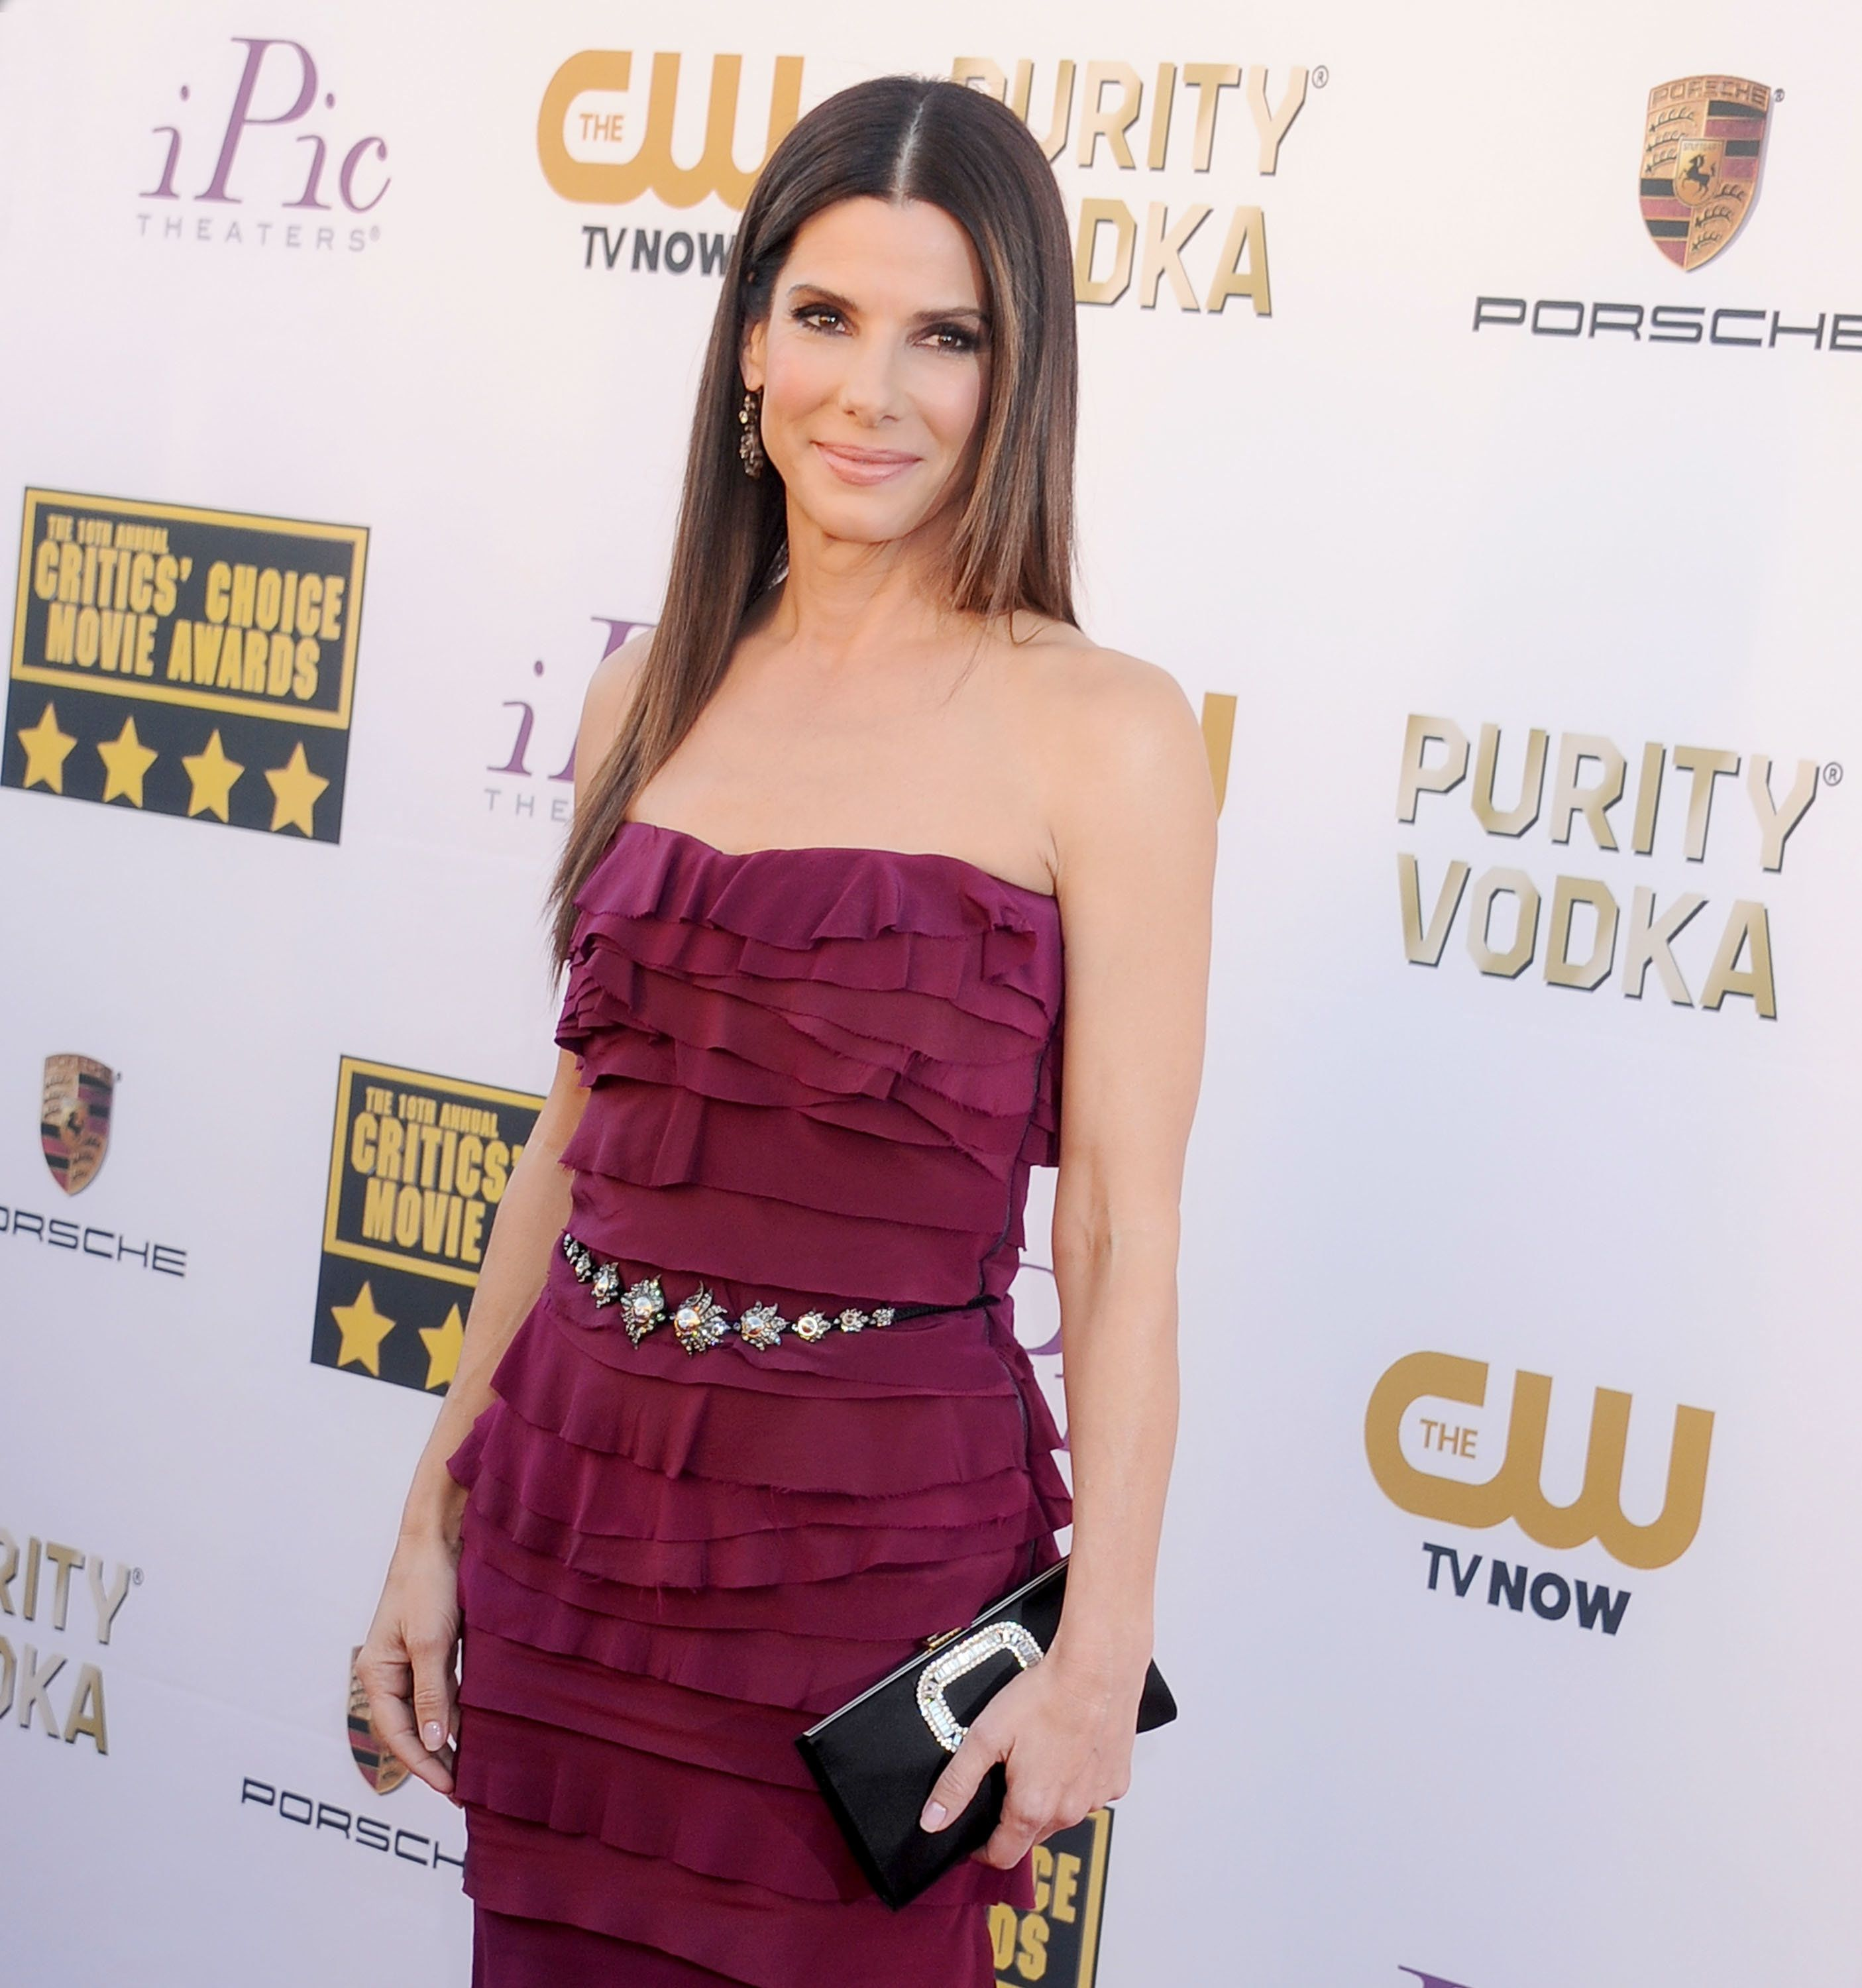 SANTA MONICA, CA - JANUARY 16: Actress Sandra Bullock arrives at the 19th Annual Critics' Choice Movie Awards at Barker Hangar on January 16, 2014 in Santa Monica, California.  (Photo by Gregg DeGuire/WireImage)